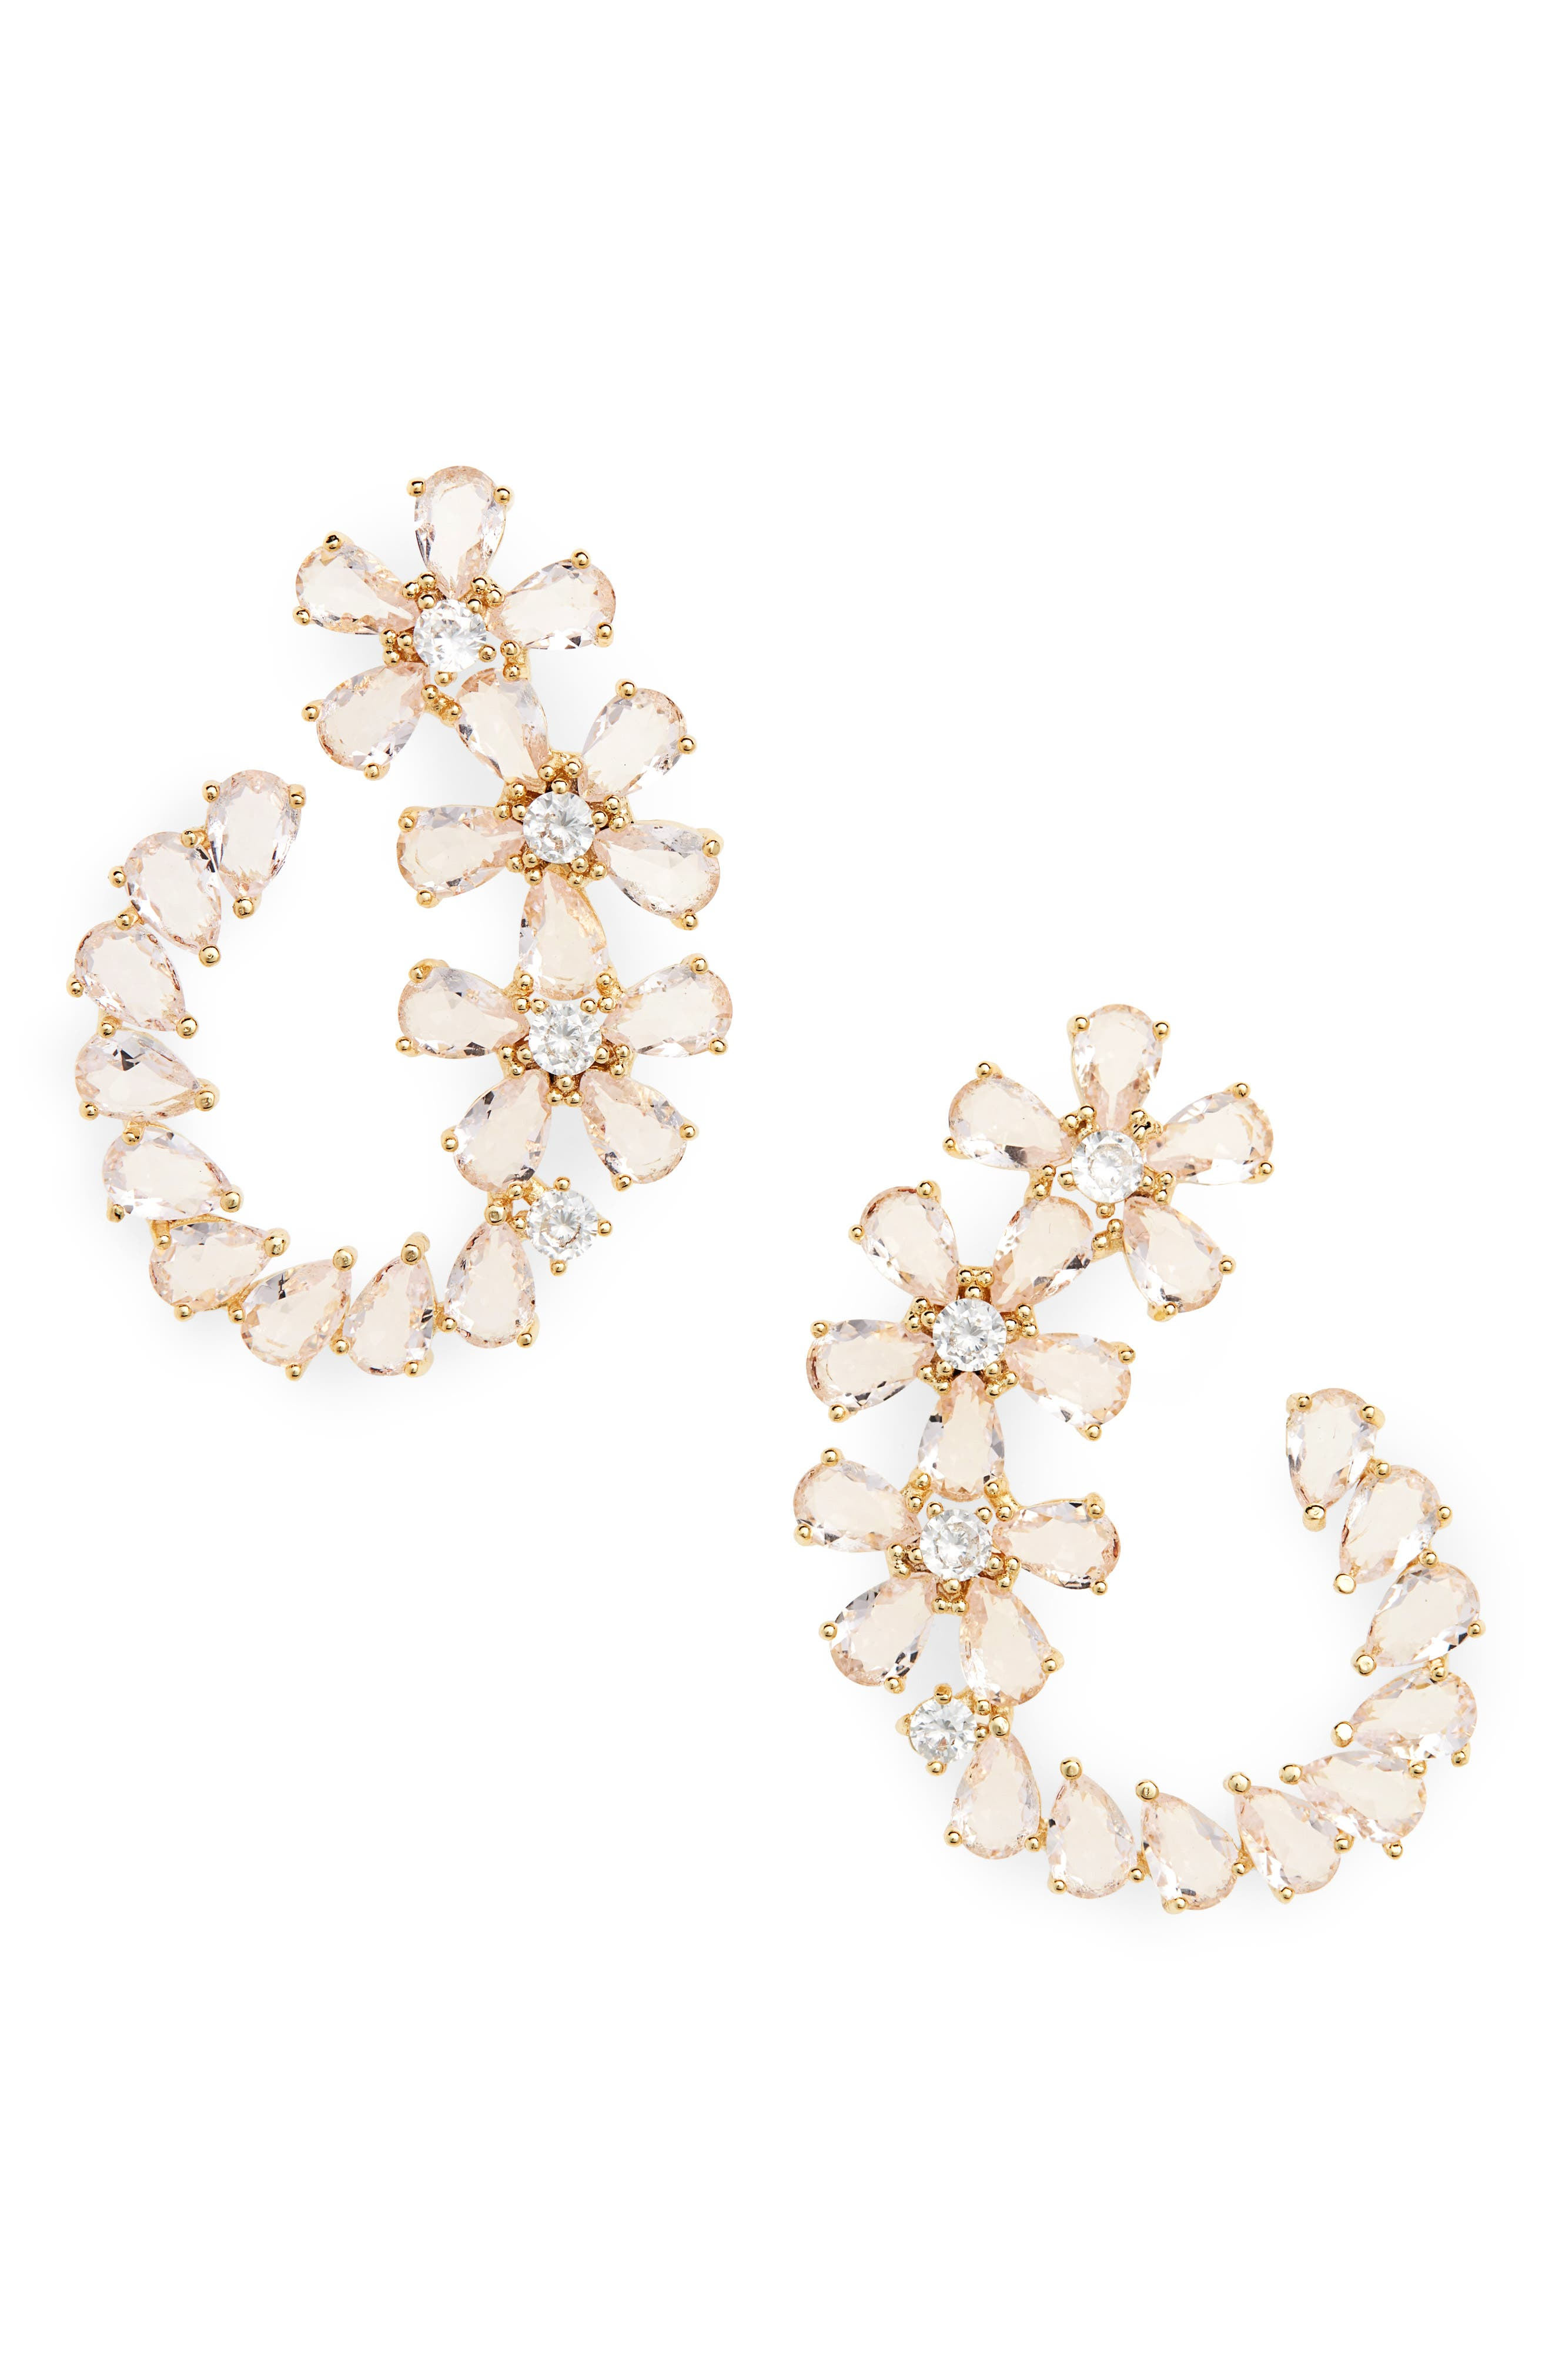 SEREFINA Ice Flower Statement Earrings, Main, color, 710